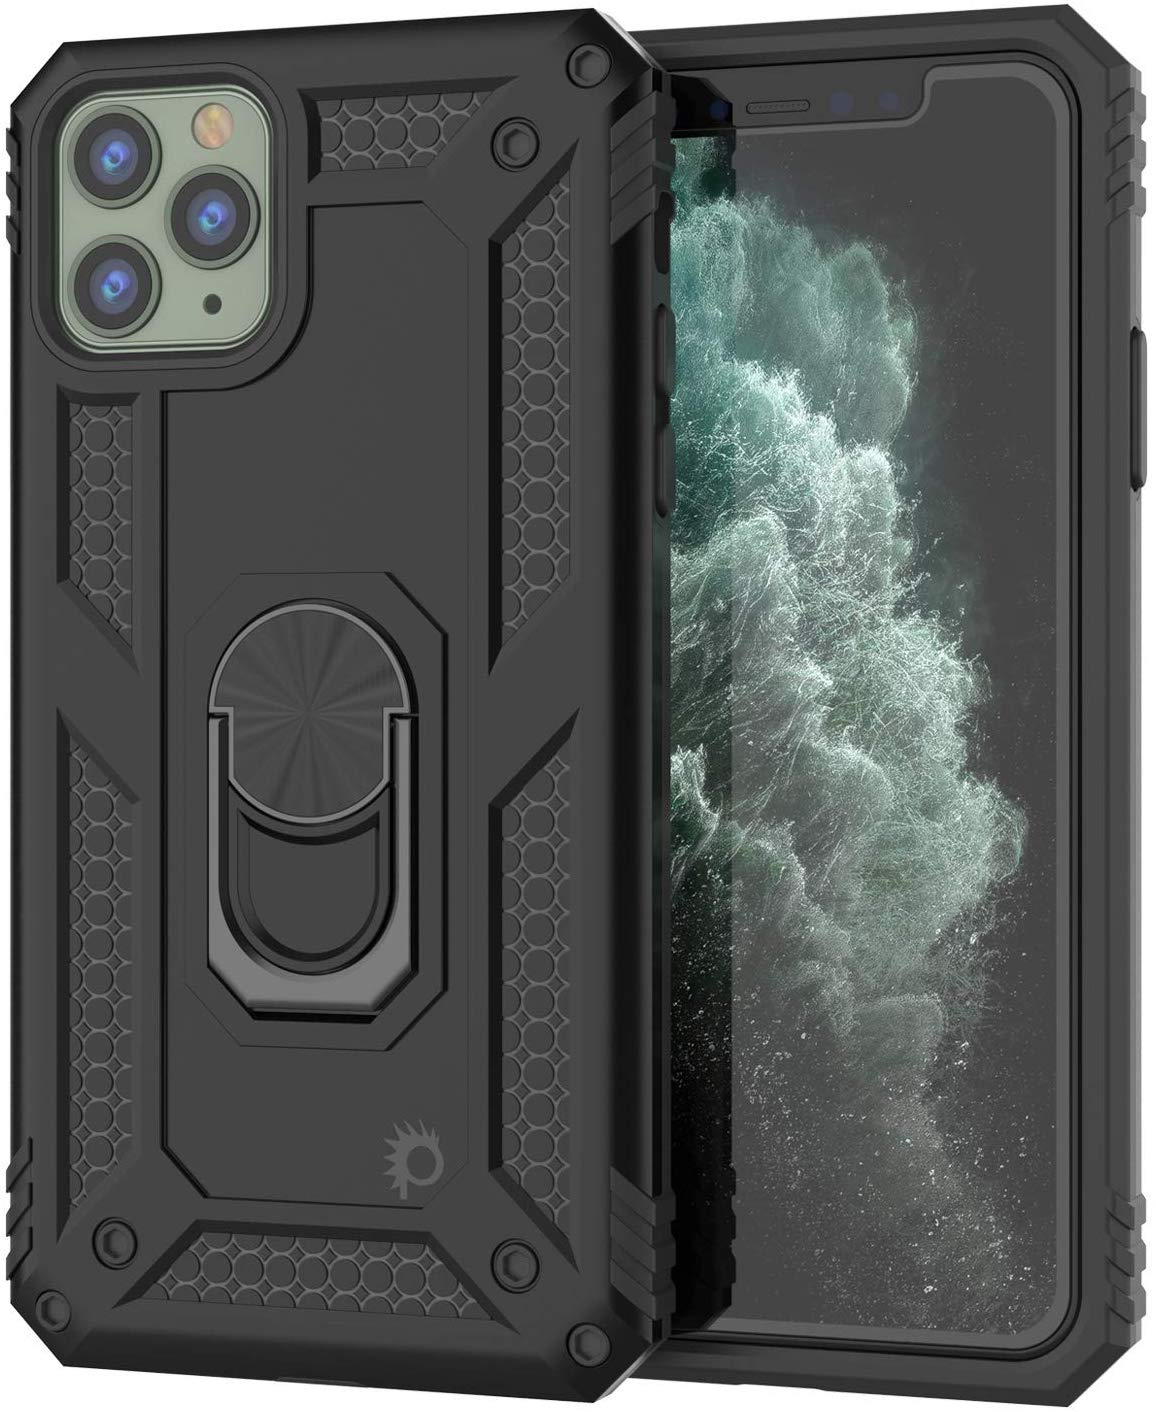 Apple iPhone 11 Pro Max Punkcase Armor Military Case Black